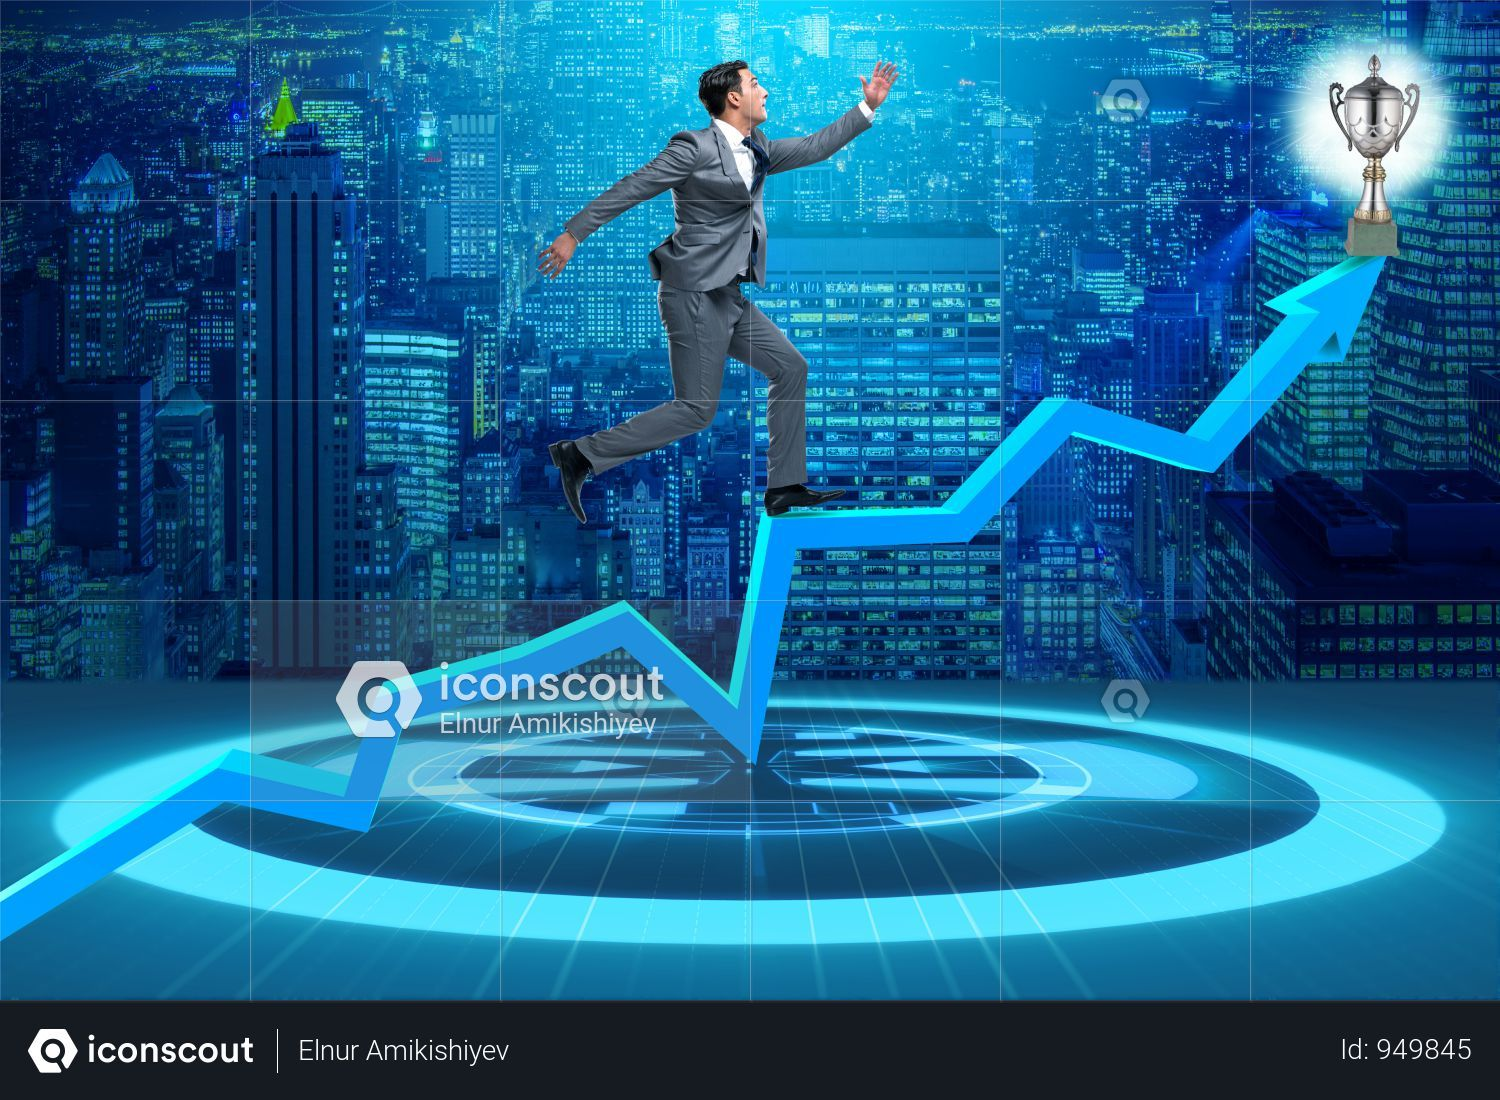 Premium Businessman Running Towards Prize Cup Trophy Photo Download In Png Jpg Format Business Man Online Stock Trading Photo